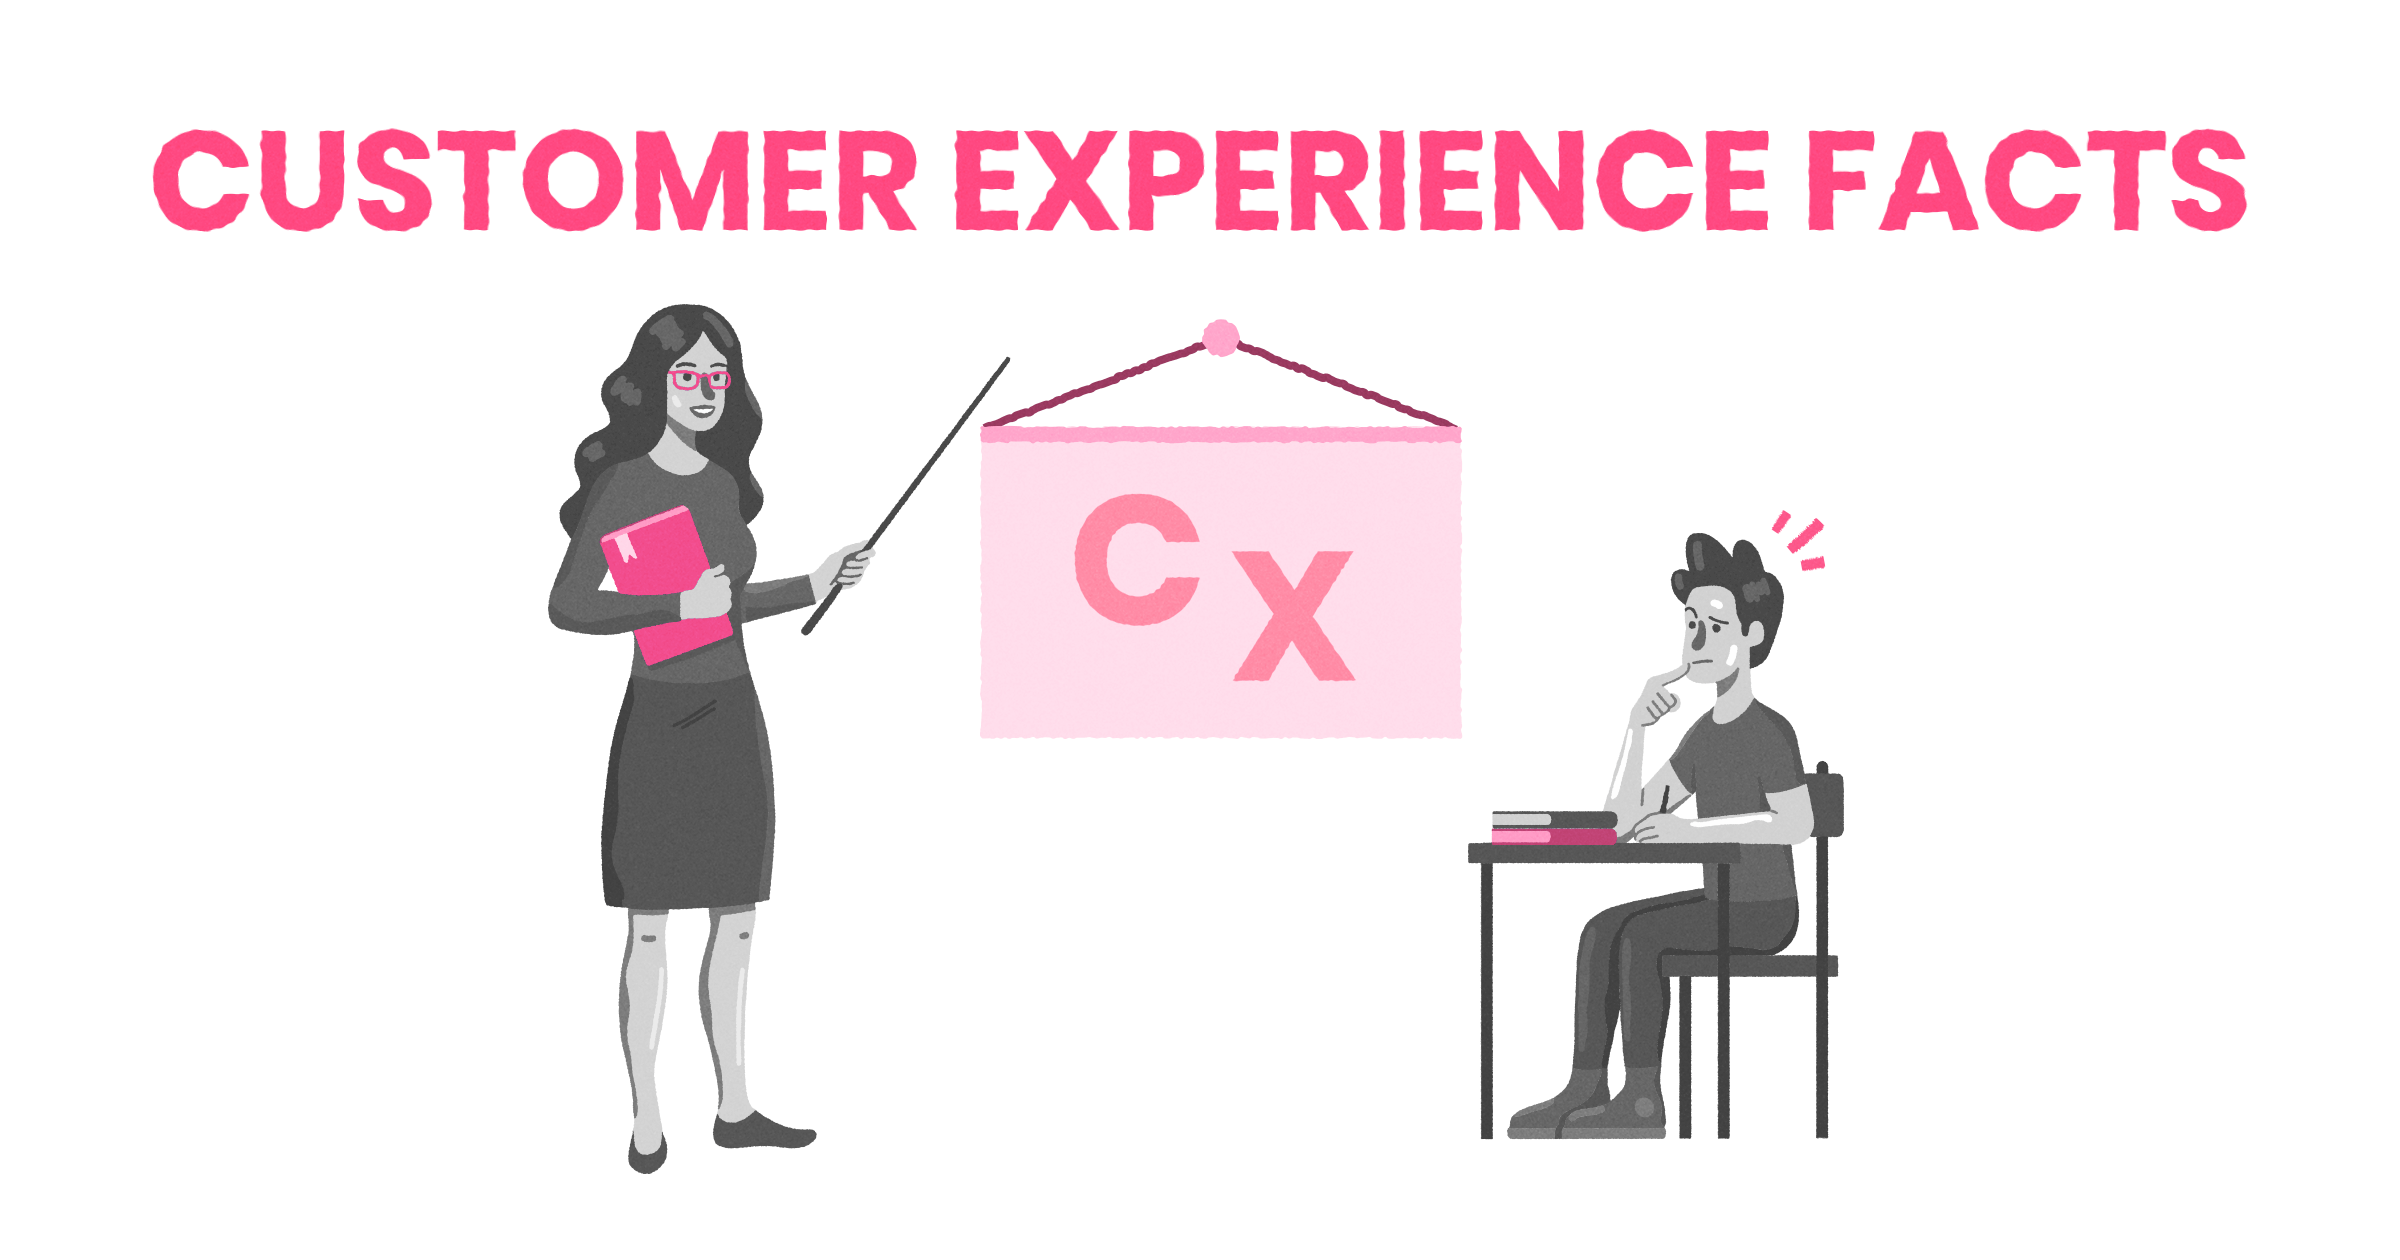 55 Facts and Statistics About Customer Experience